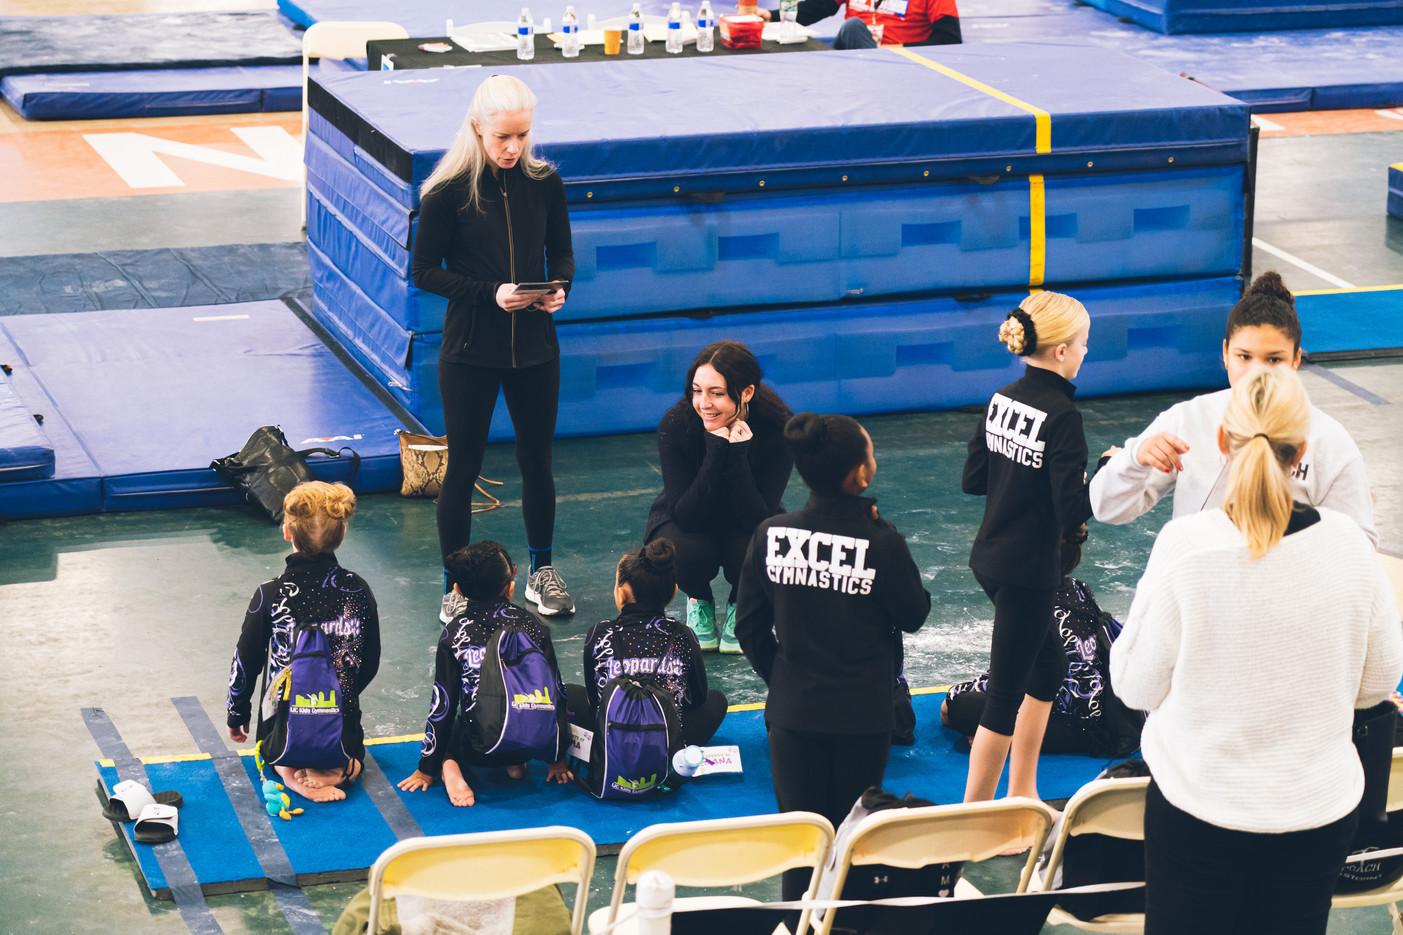 Industry Gymnastics Getting ready for a meet